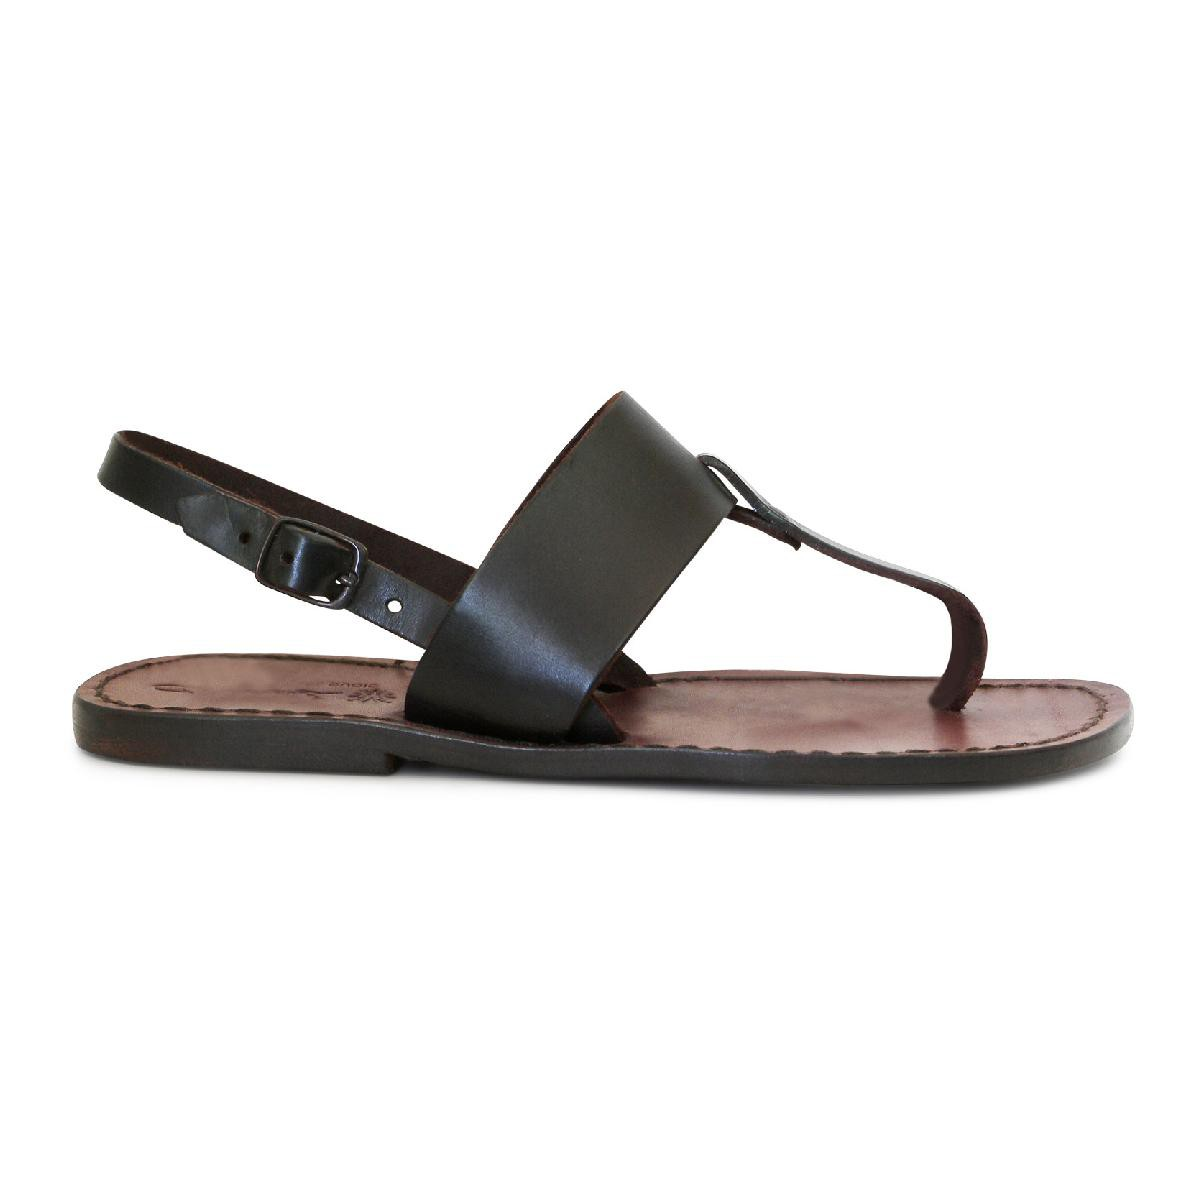 Wonderful Handmade Thong Sandals For Women Dark Brown Leather | Gianluca - The Leather Craftsman